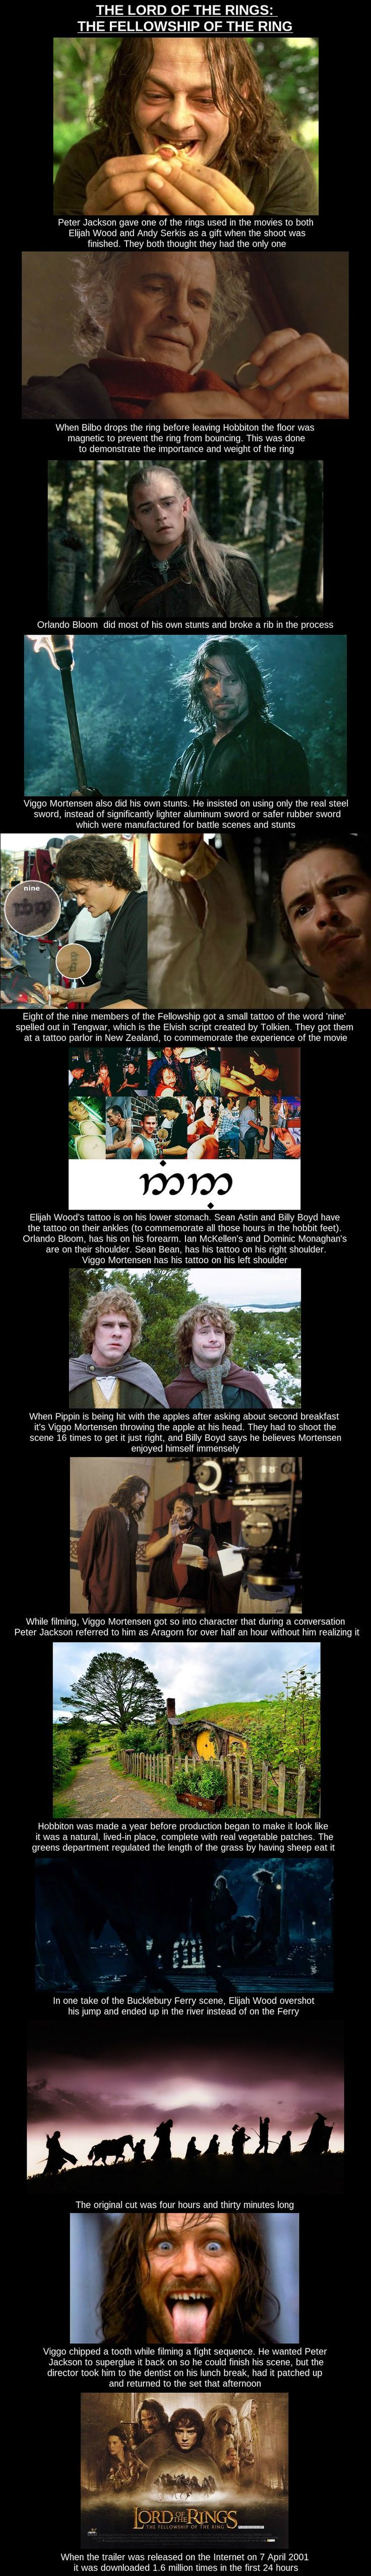 "The Fellowship of the Ring Film Facts. In fairness to Billy Boyd, Viggo did kiss him so thoroughly that he ""saw stars"" later, lol."